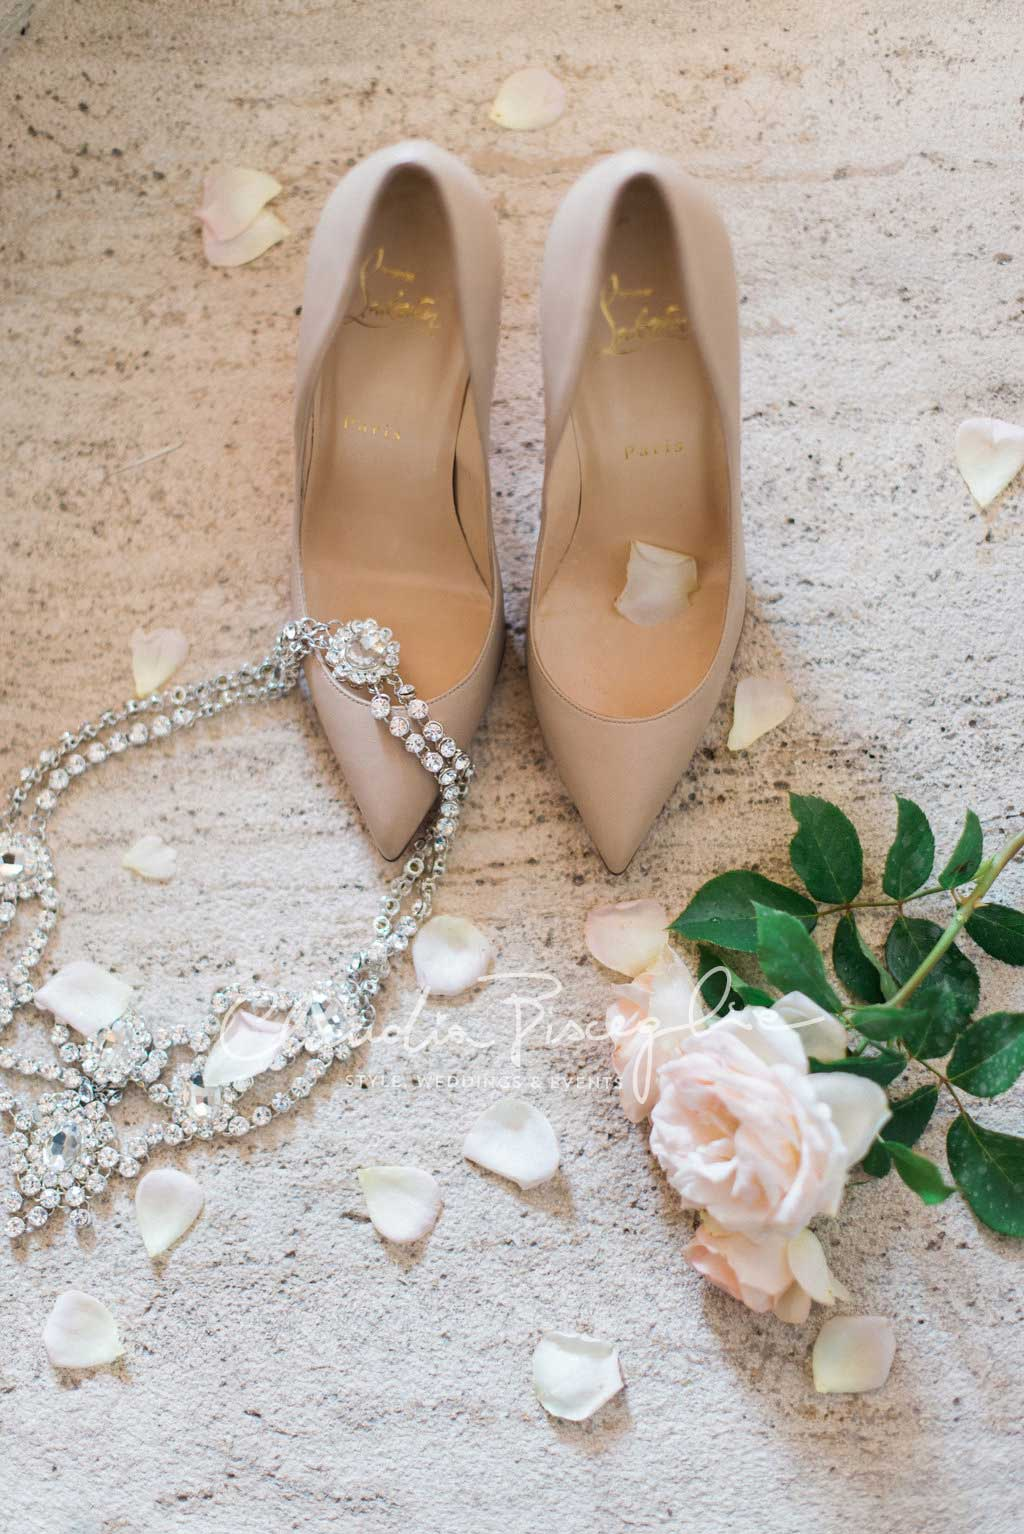 B-Shoes-roses-elegance-wedding-ClaudiaBisceglie-weddingplanner